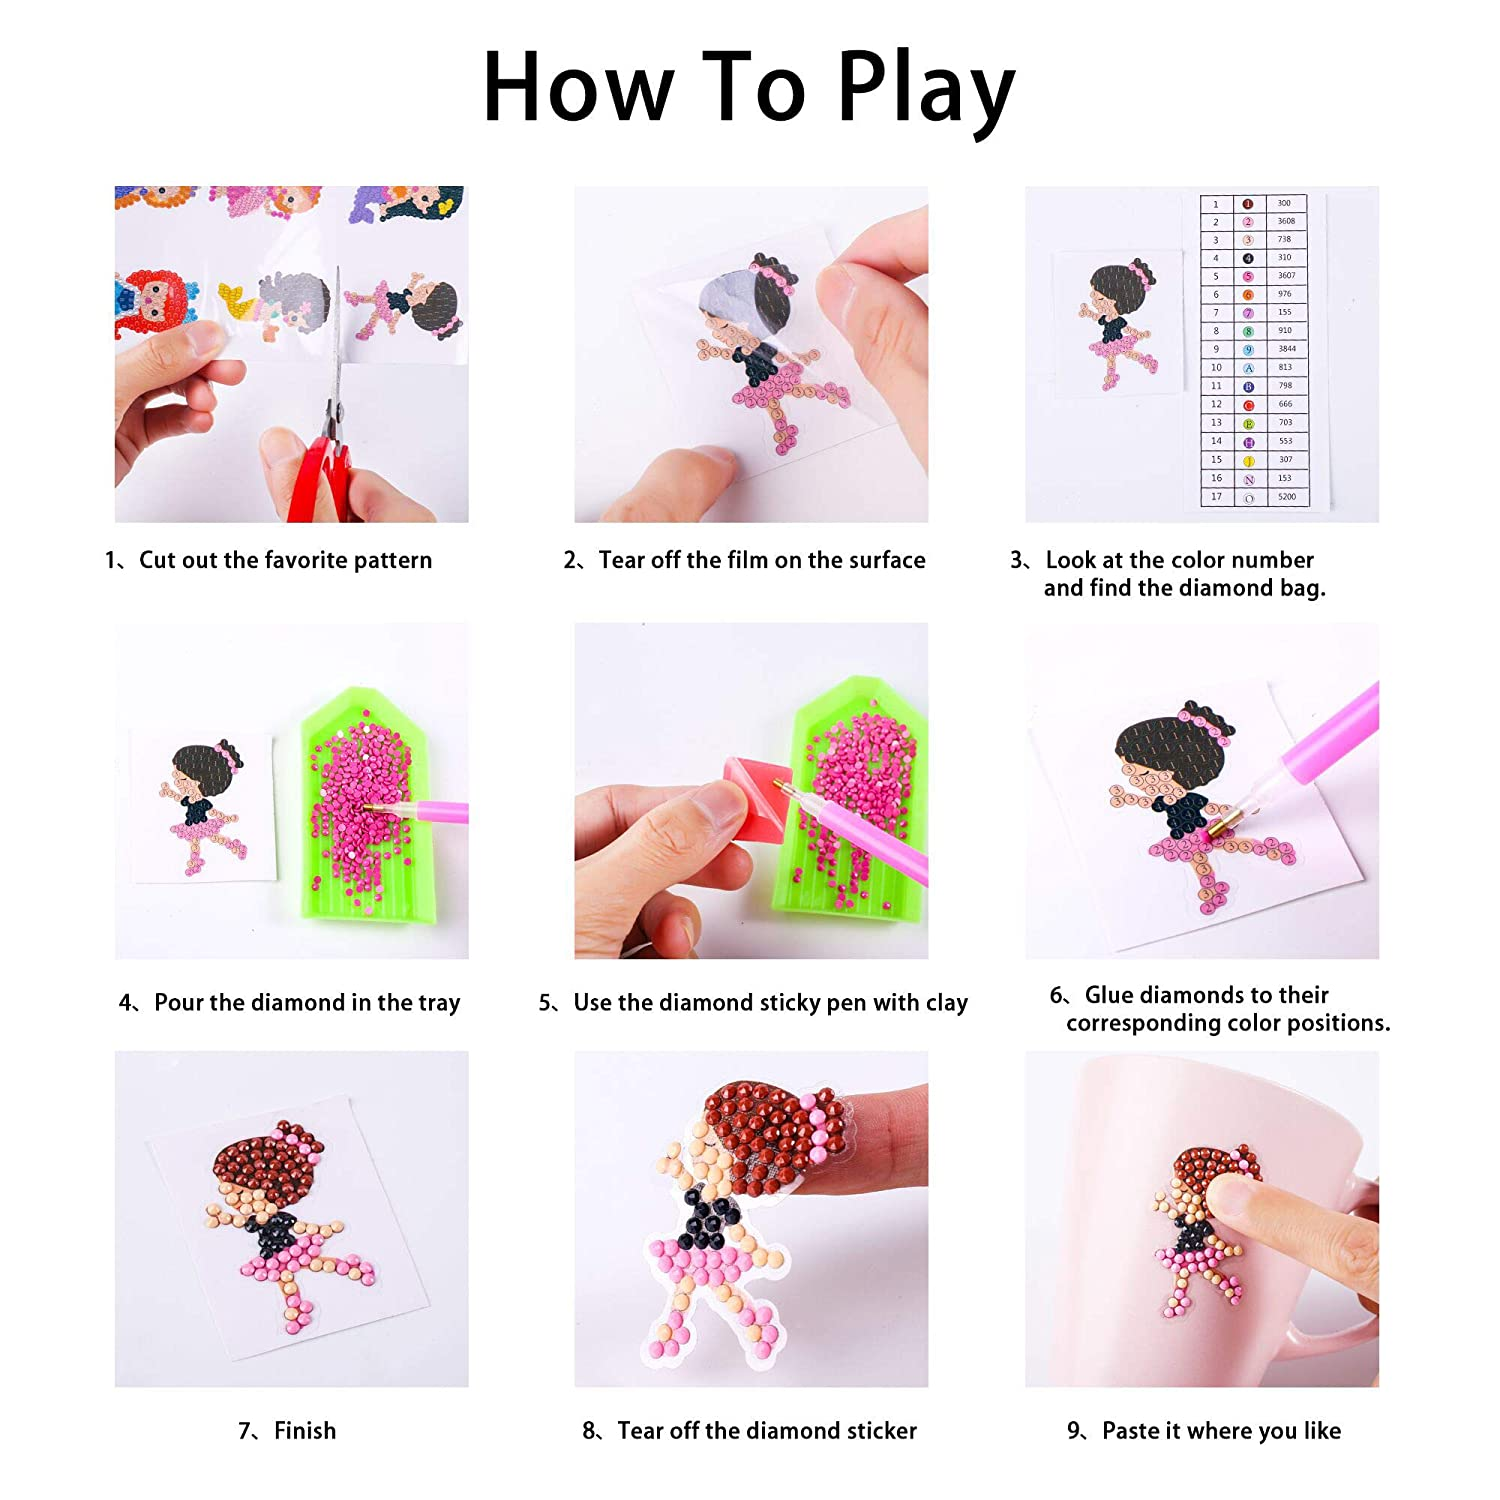 Princesses Dance Girls Fairies 5D DIY 18PCS Diamond Painting Kits for Kids Stickers and Adult Beginners Paint with Diamonds Kits Arts Crafts Easy to Paint Best Gift